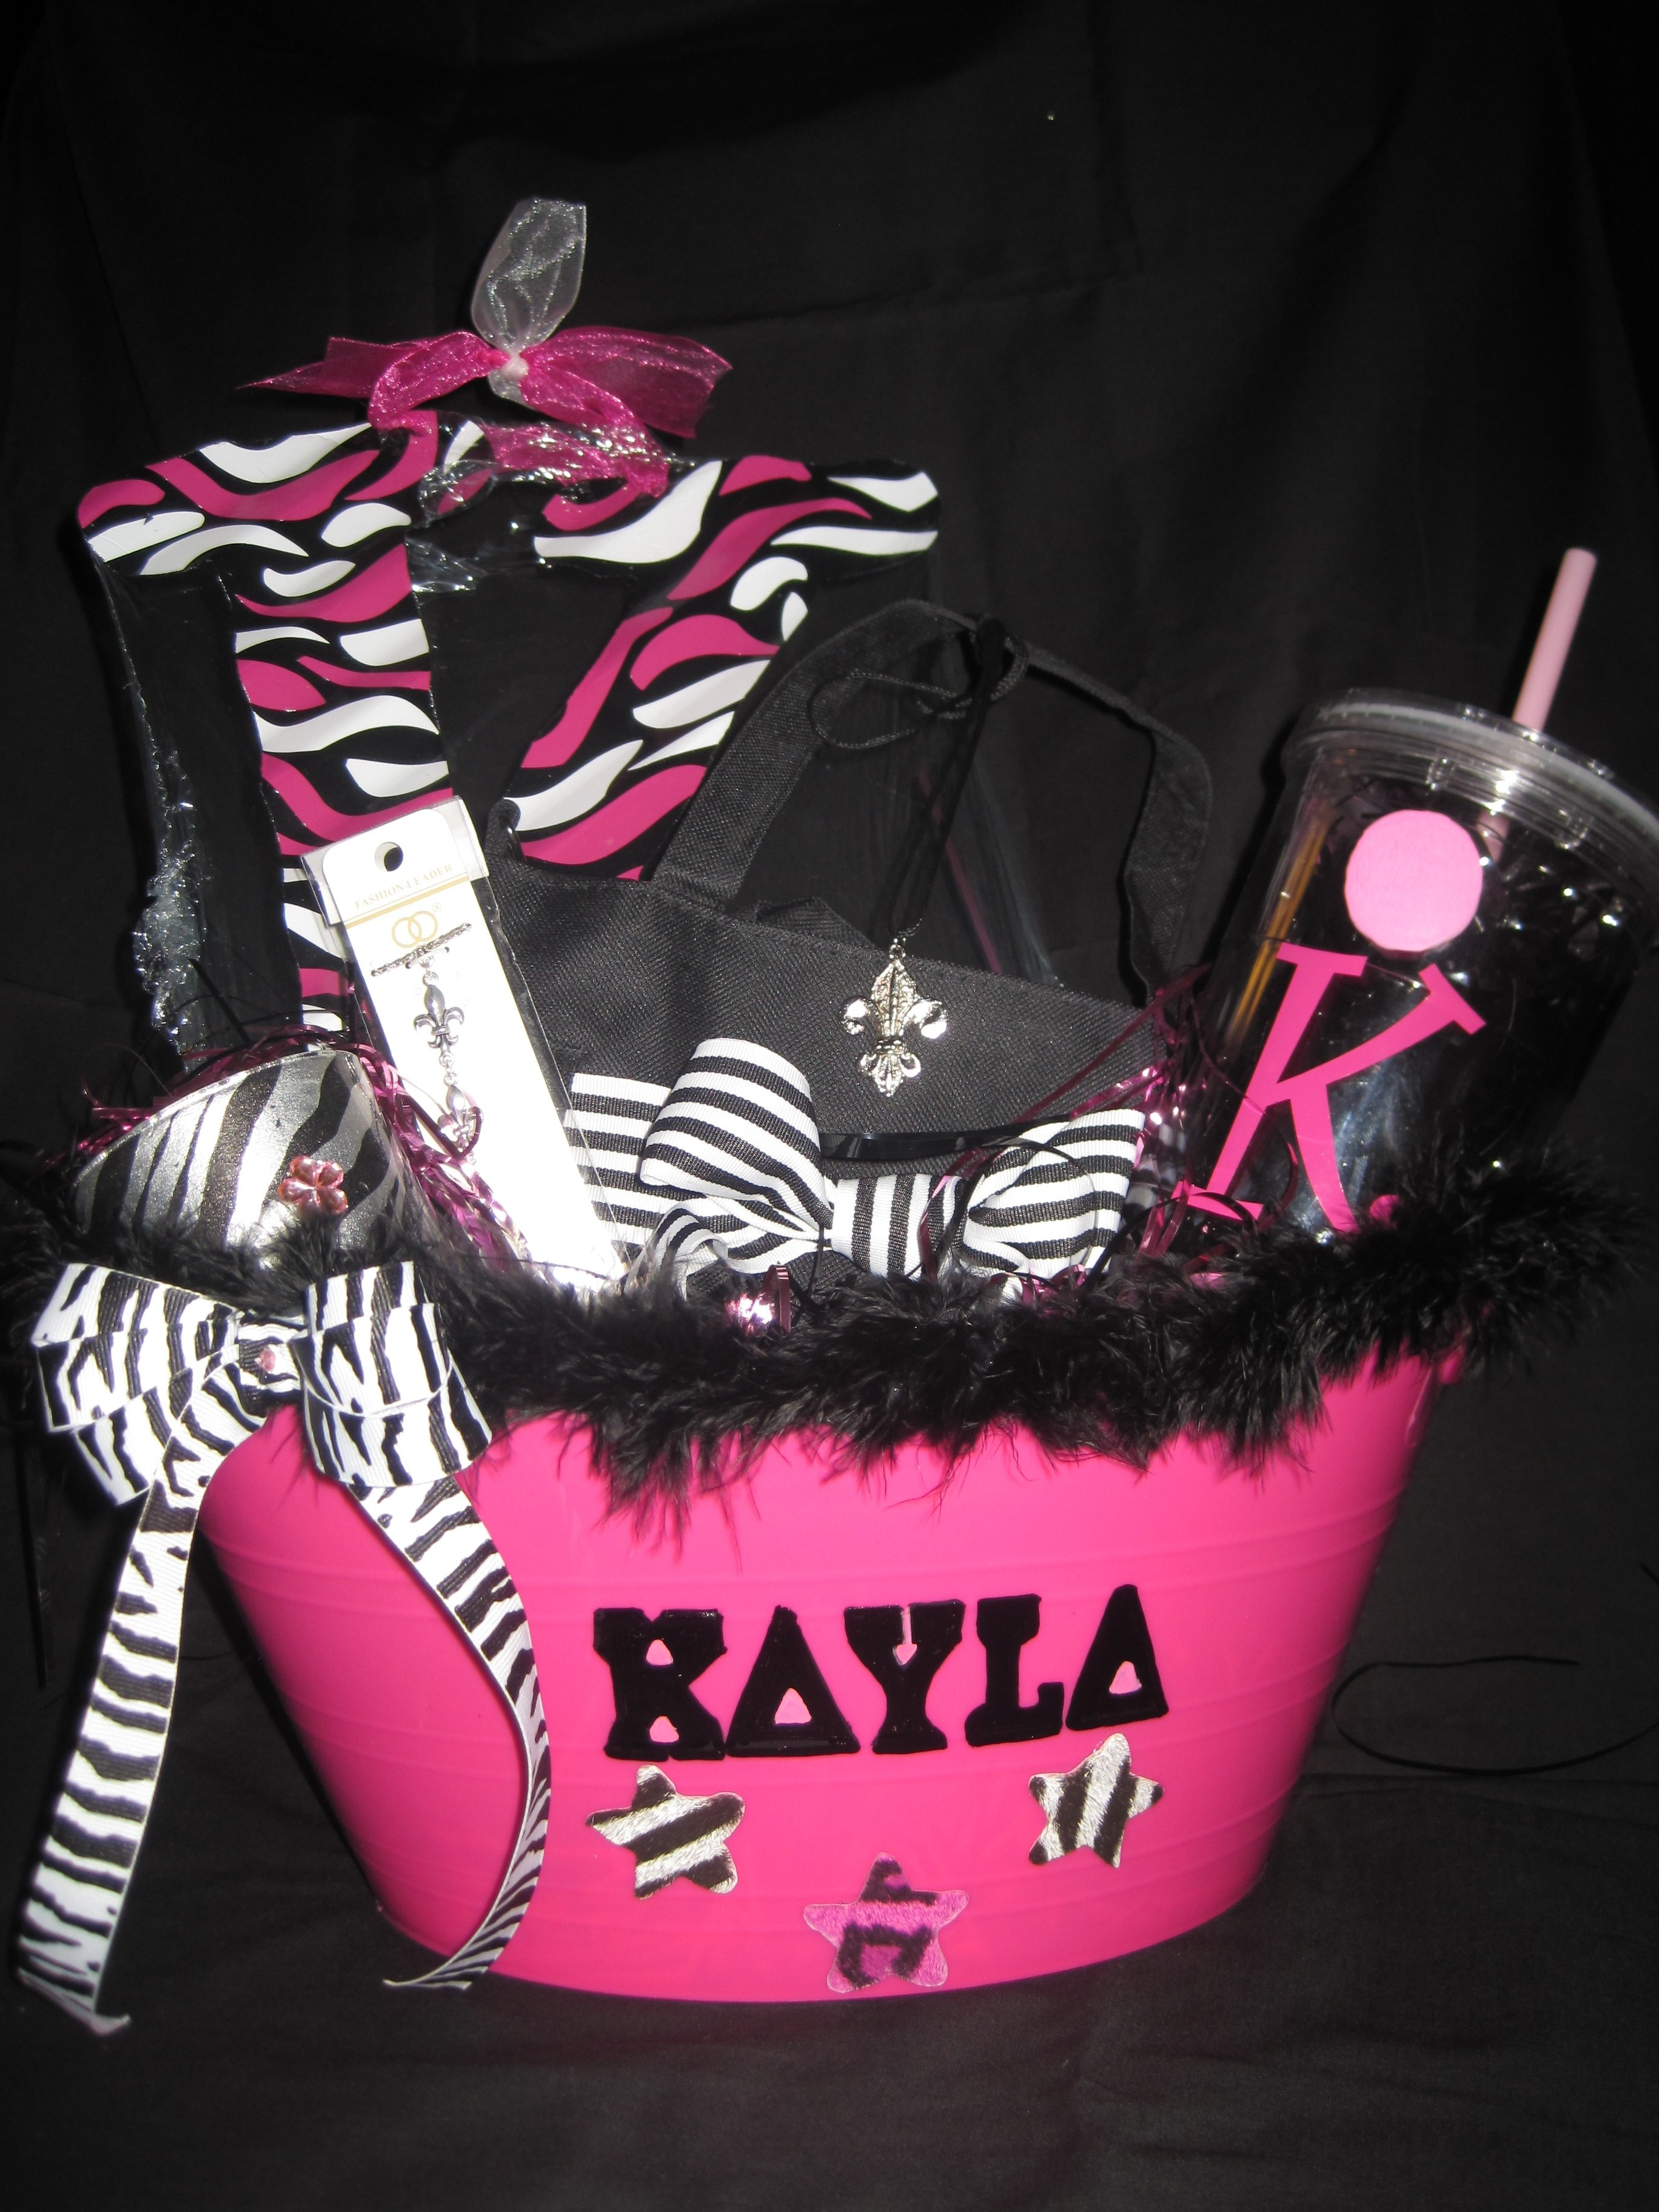 10 Stylish 18Th Birthday Present Ideas For Girls sweet 16 birthday basket gift idea for your friends gifts 4